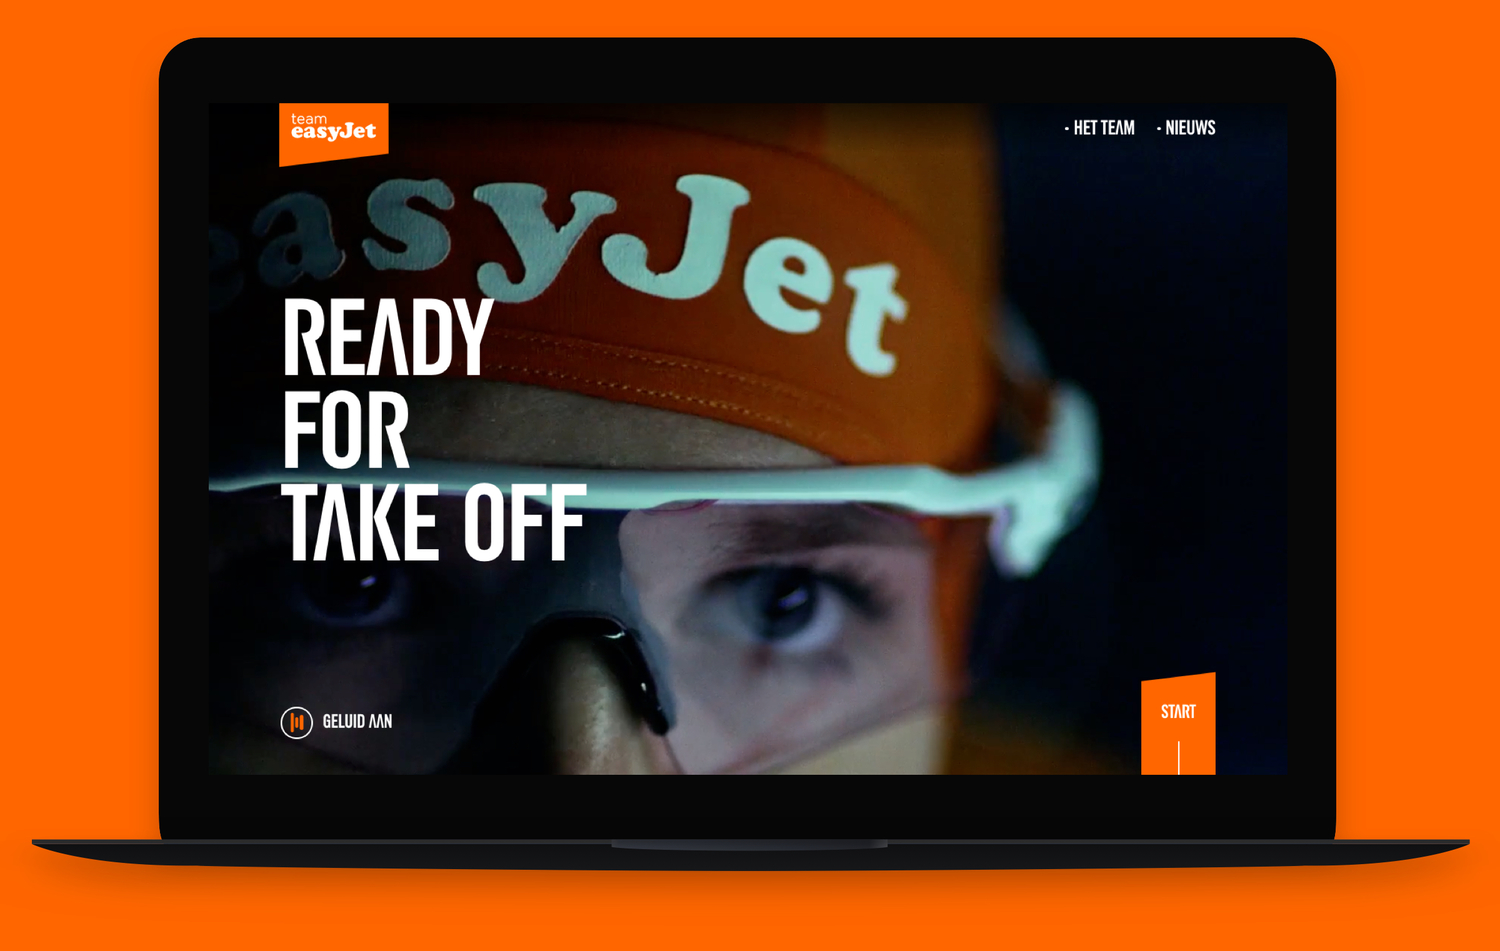 Key visual easyJet laptop screenshot website